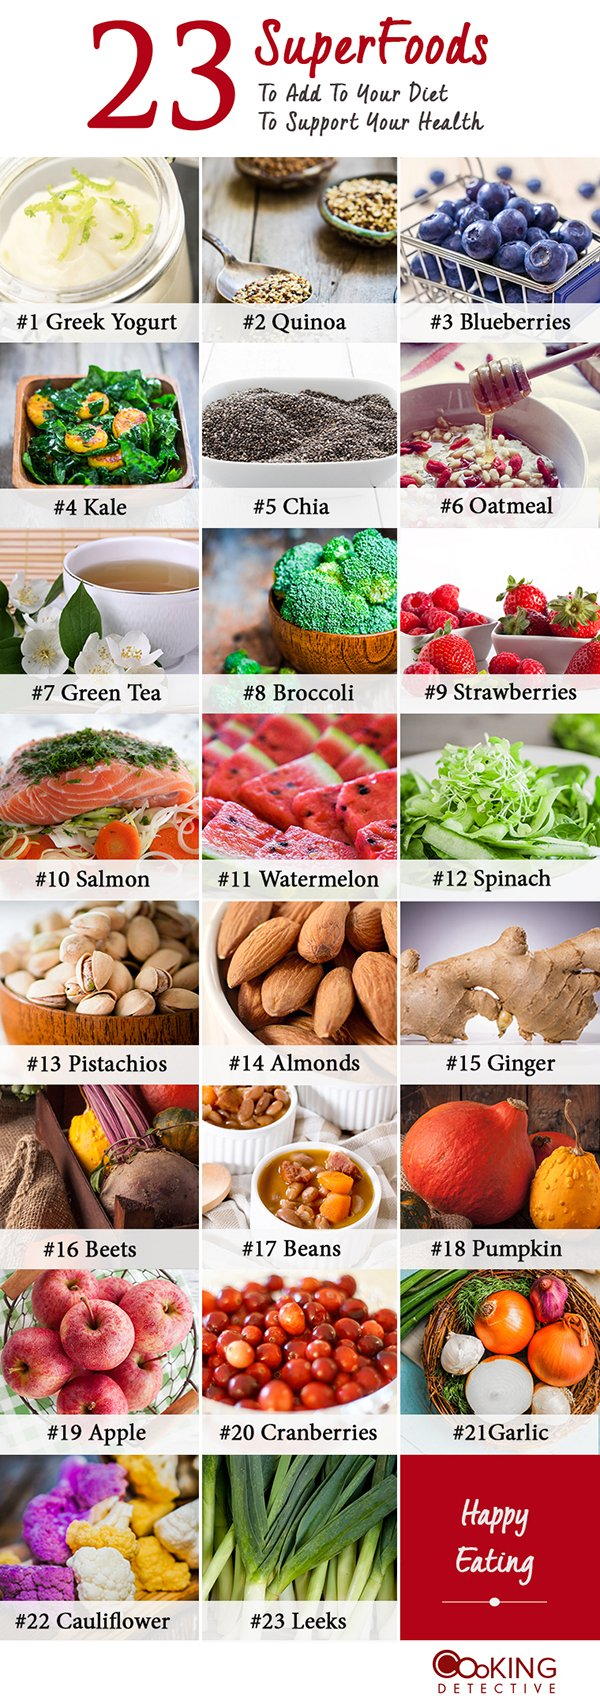 23 superfood infographic